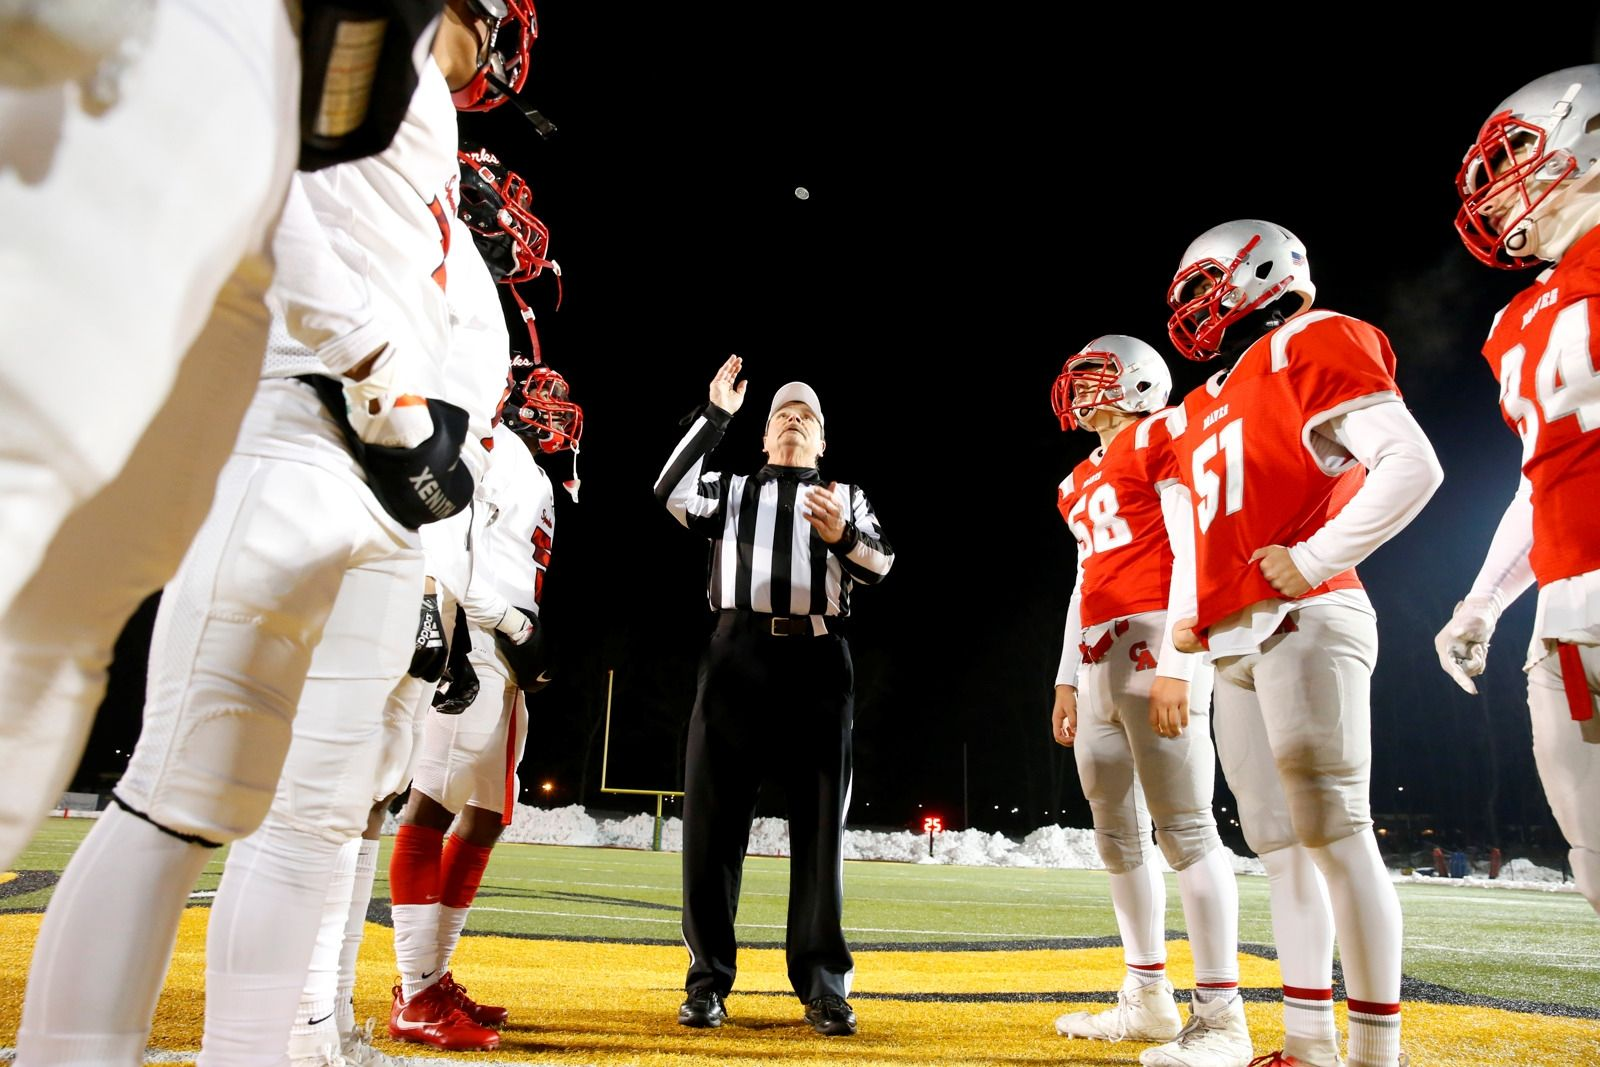 Al Fuller flips the coin prior to South Park and Canandaigua Academy Class A Far West Regional game at SUNY Brockport on Friday, Nov. 15, 2019.